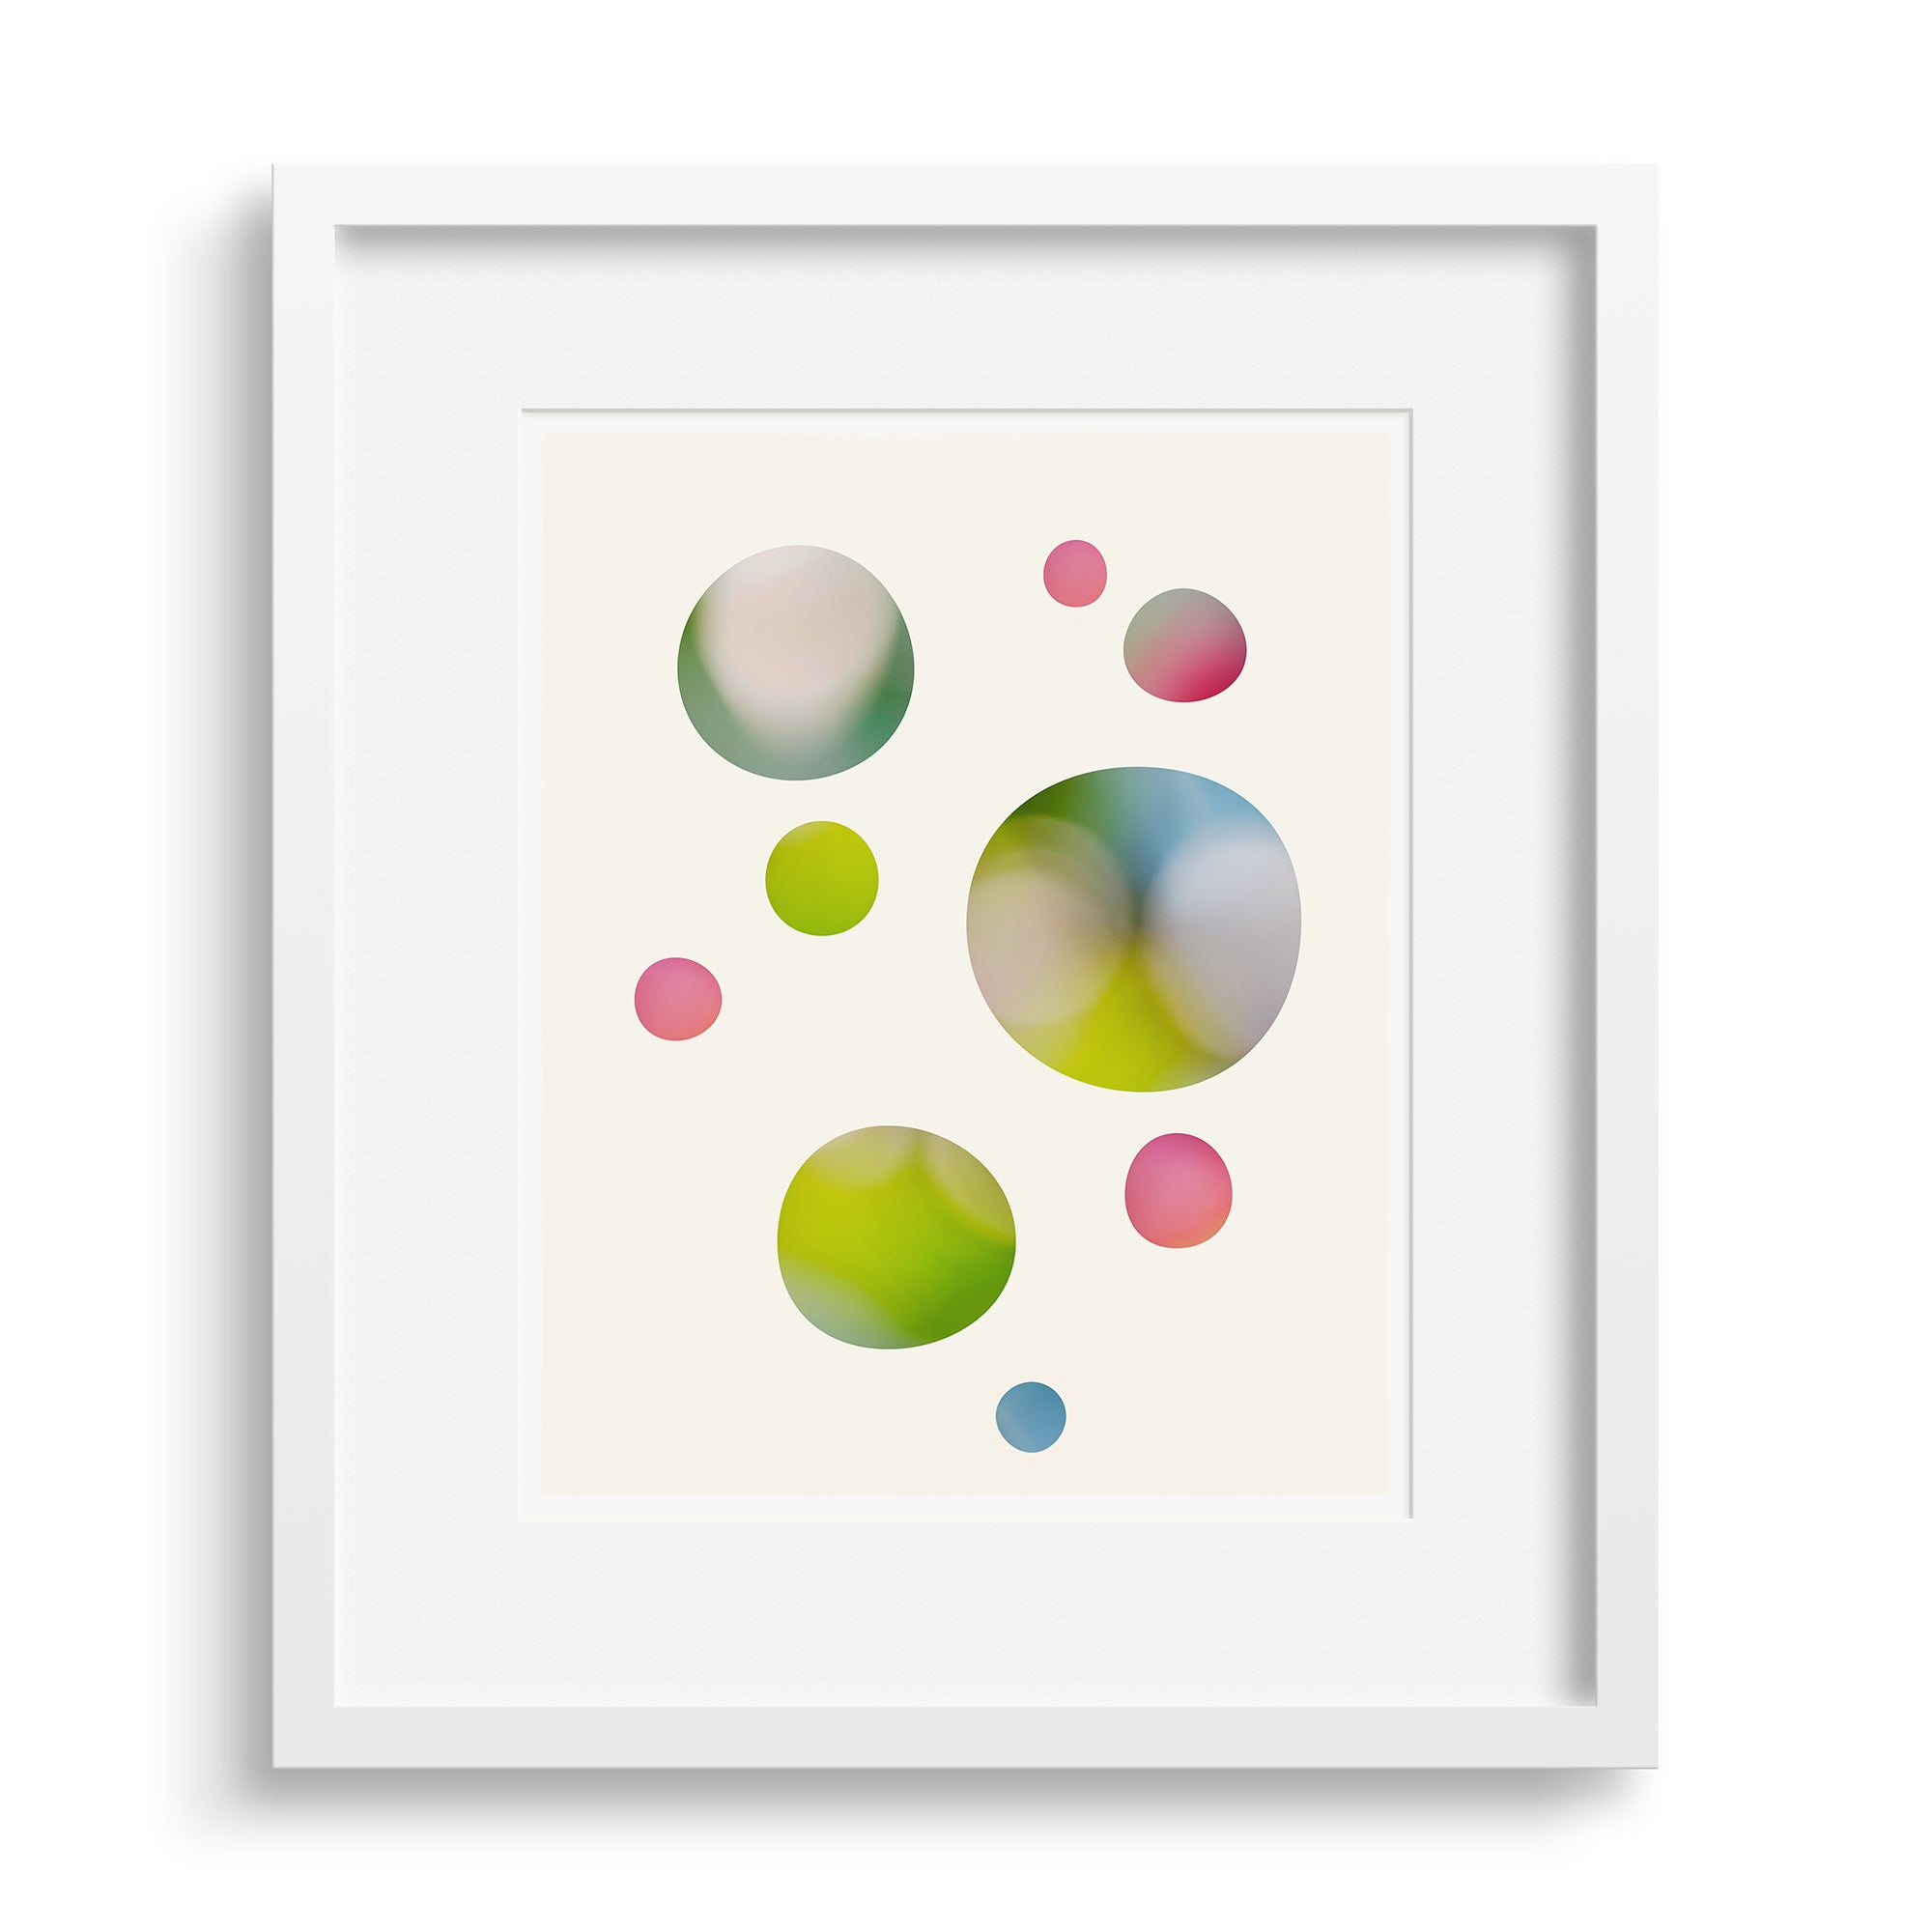 White framed version of 'We Were Dreaming', a limited edition fine art print by Janet Taylor | Household Art.